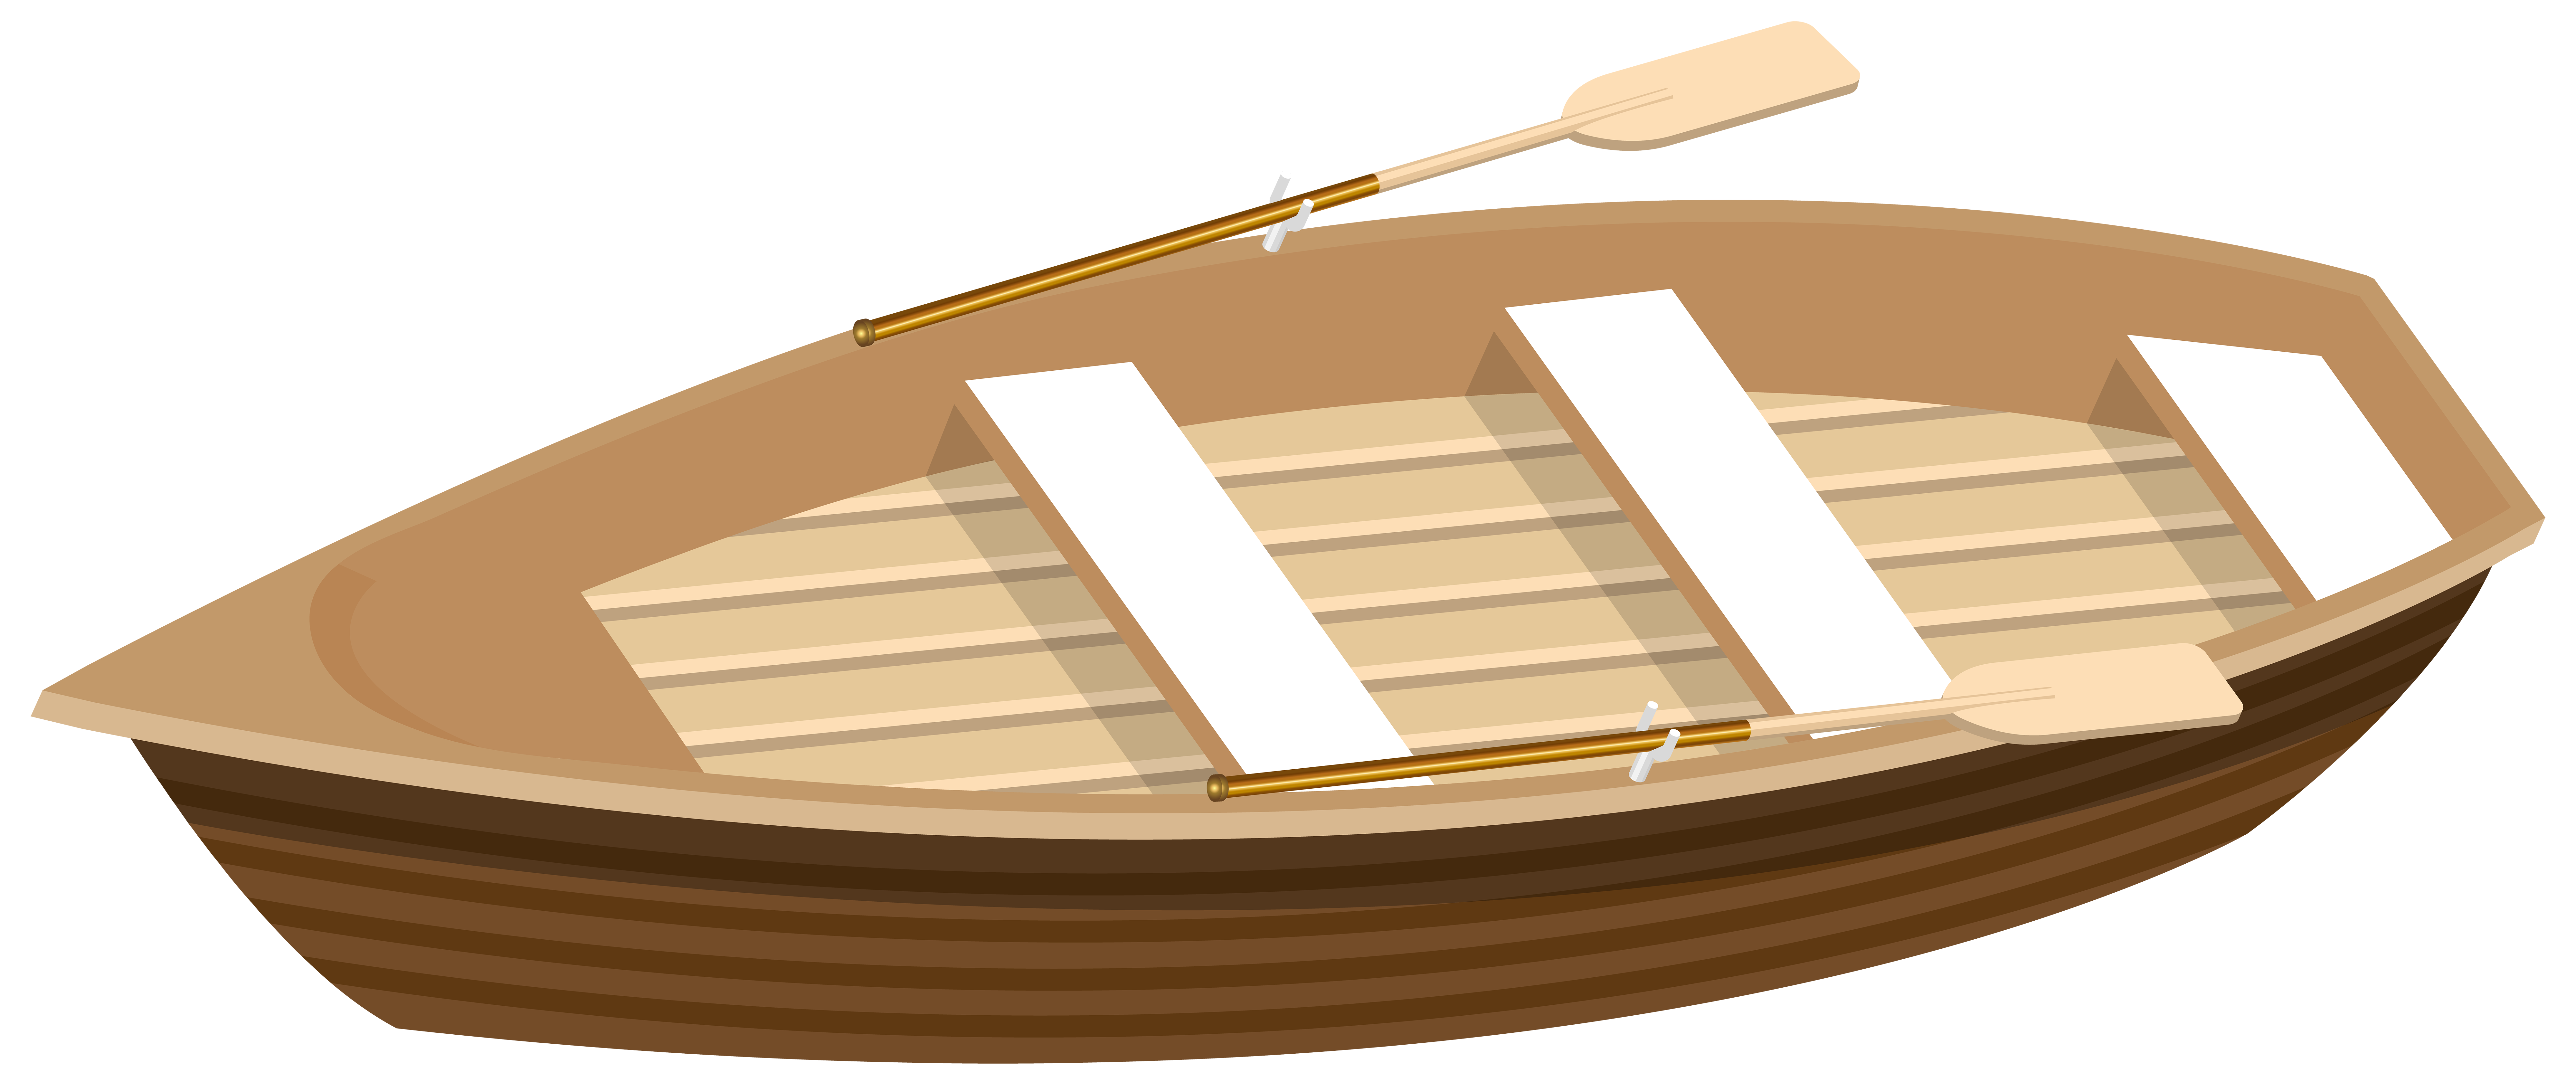 boat clipart transparent pencil and color boat #18495